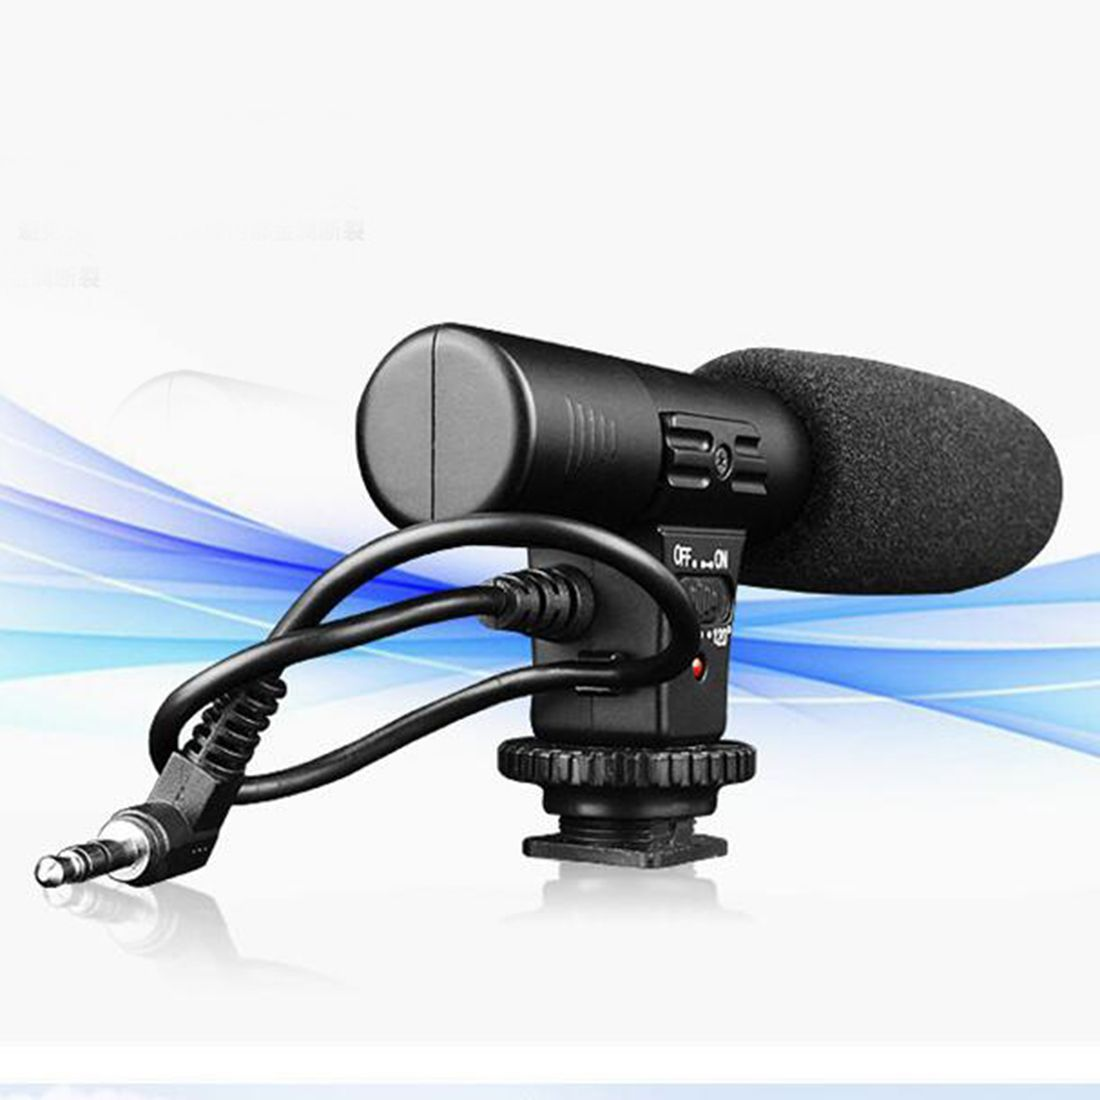 Marsnaska Professional Digital Video Stereo Studio 3.5mm Black Microphone Sgun for Canon Nikon Pentax DSLR Cameras Camcorders